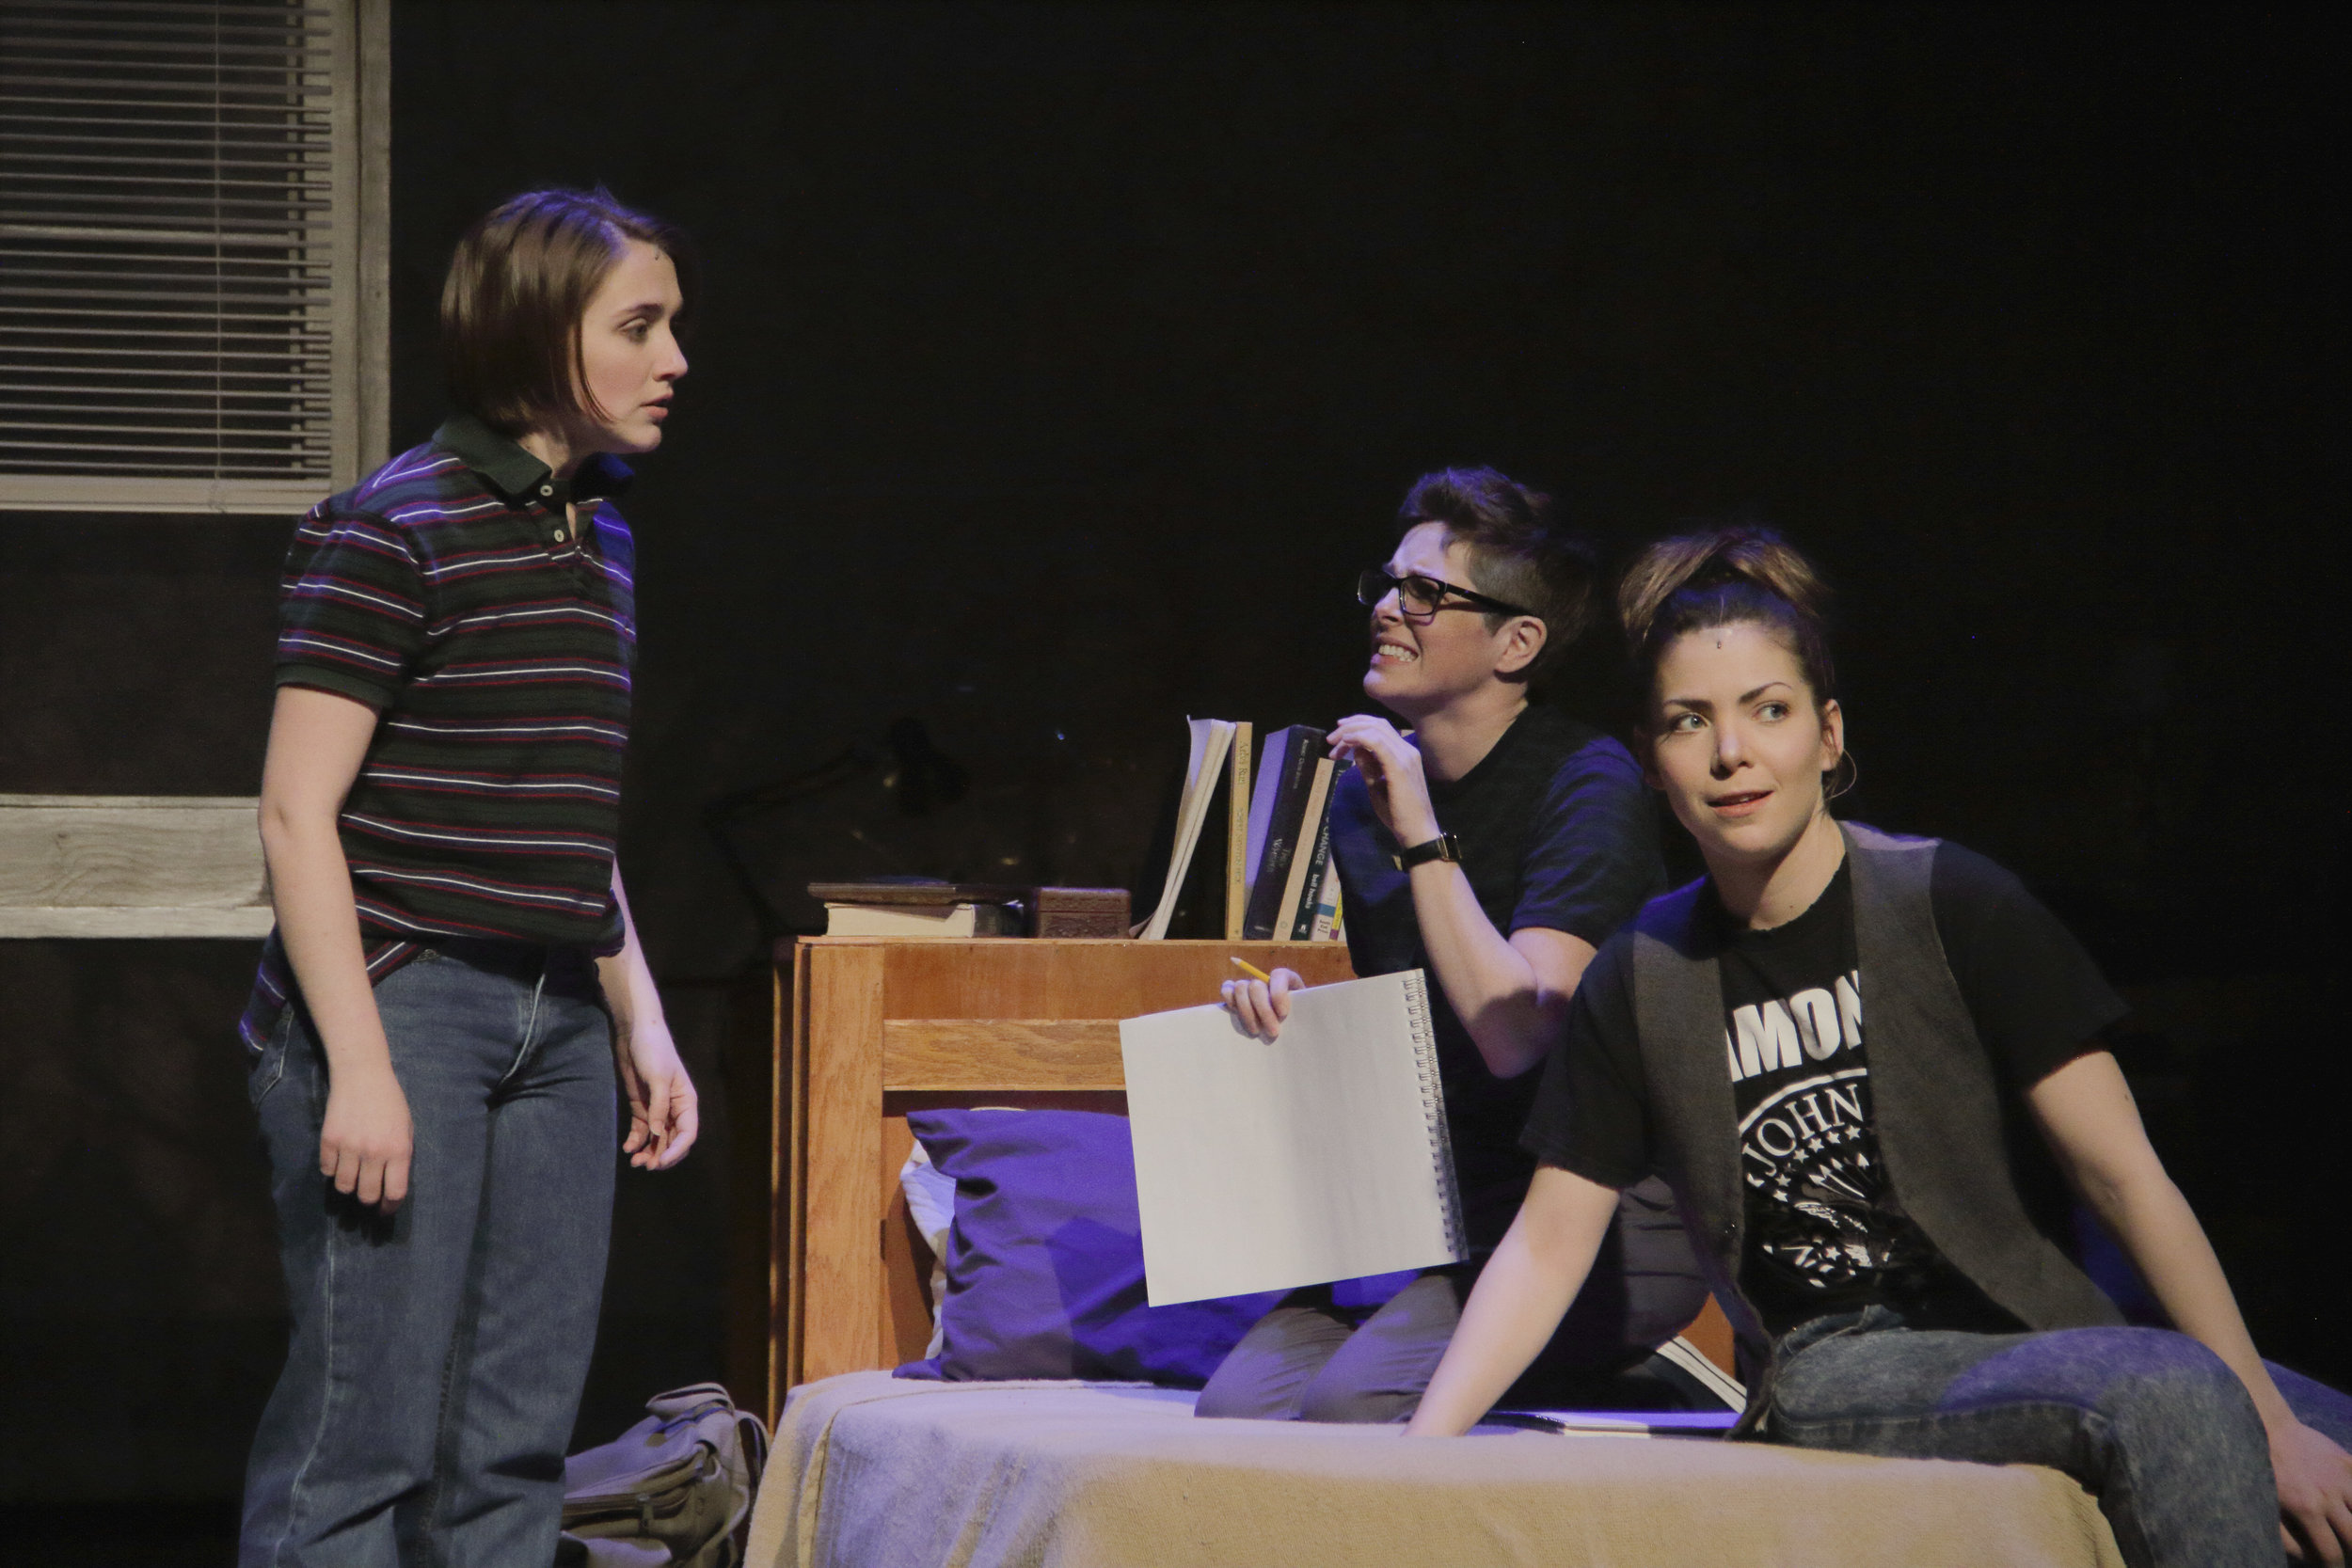 FunHome closeups 083  _ EDITED.jpg